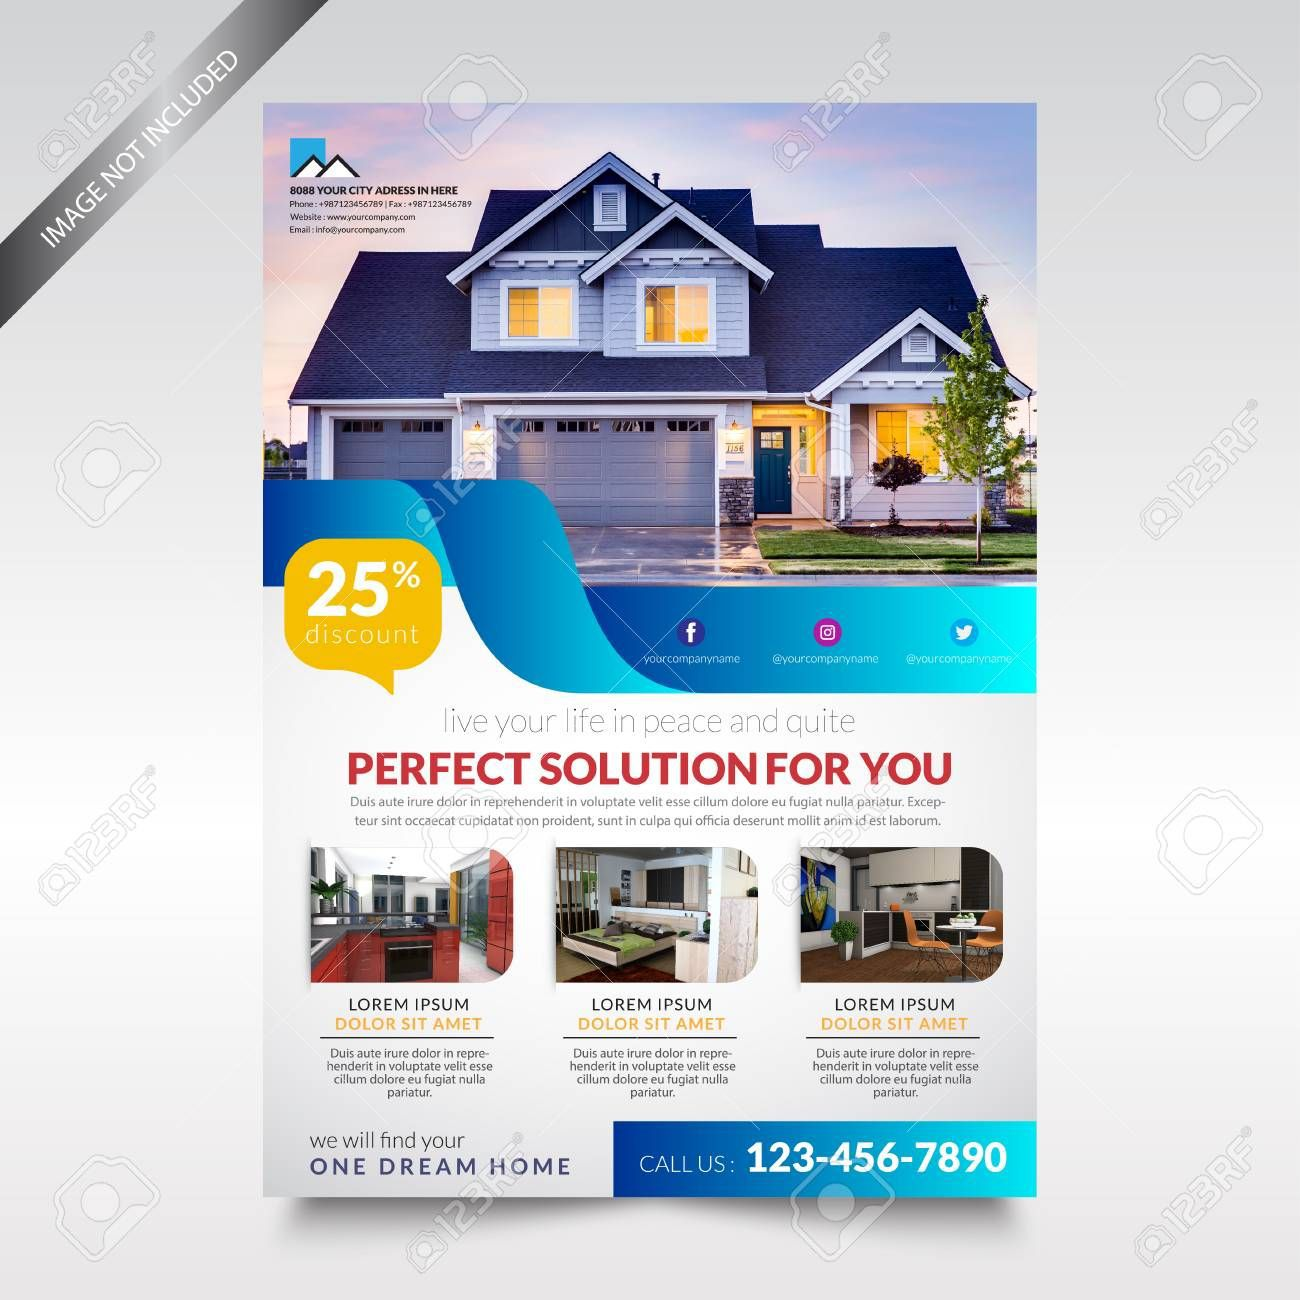 002 Archaicawful Real Estate Flyer Template Free Photo  Publisher Commercial Pdf DownloadFull